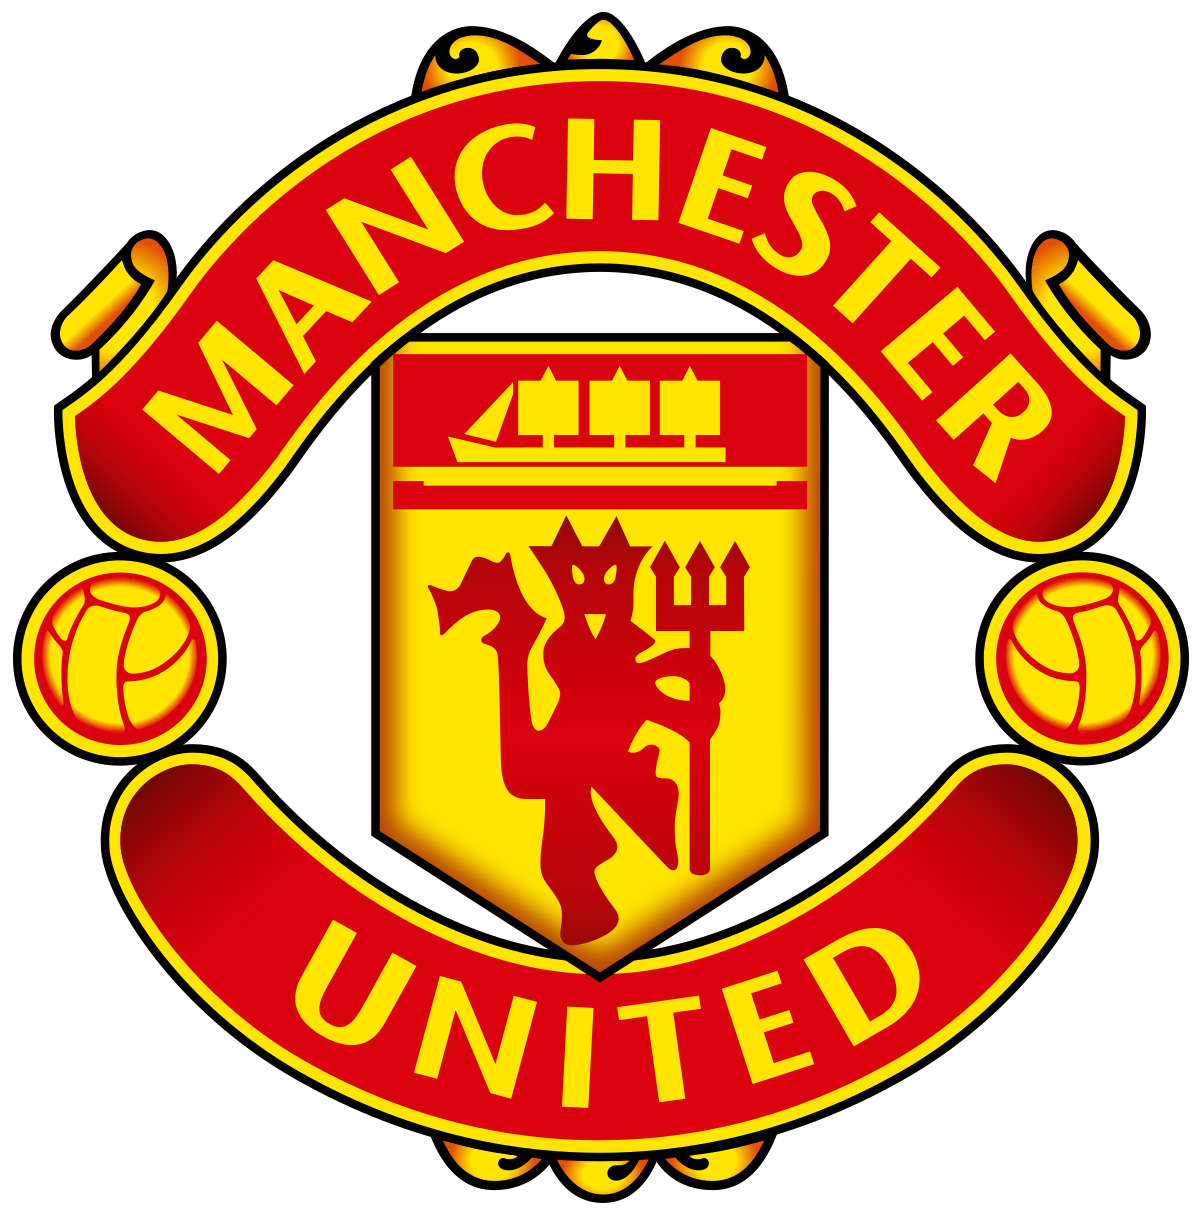 Pin By Faith B On Inspiration In 2020 Manchester United Logo Manchester United Wallpaper Manchester United